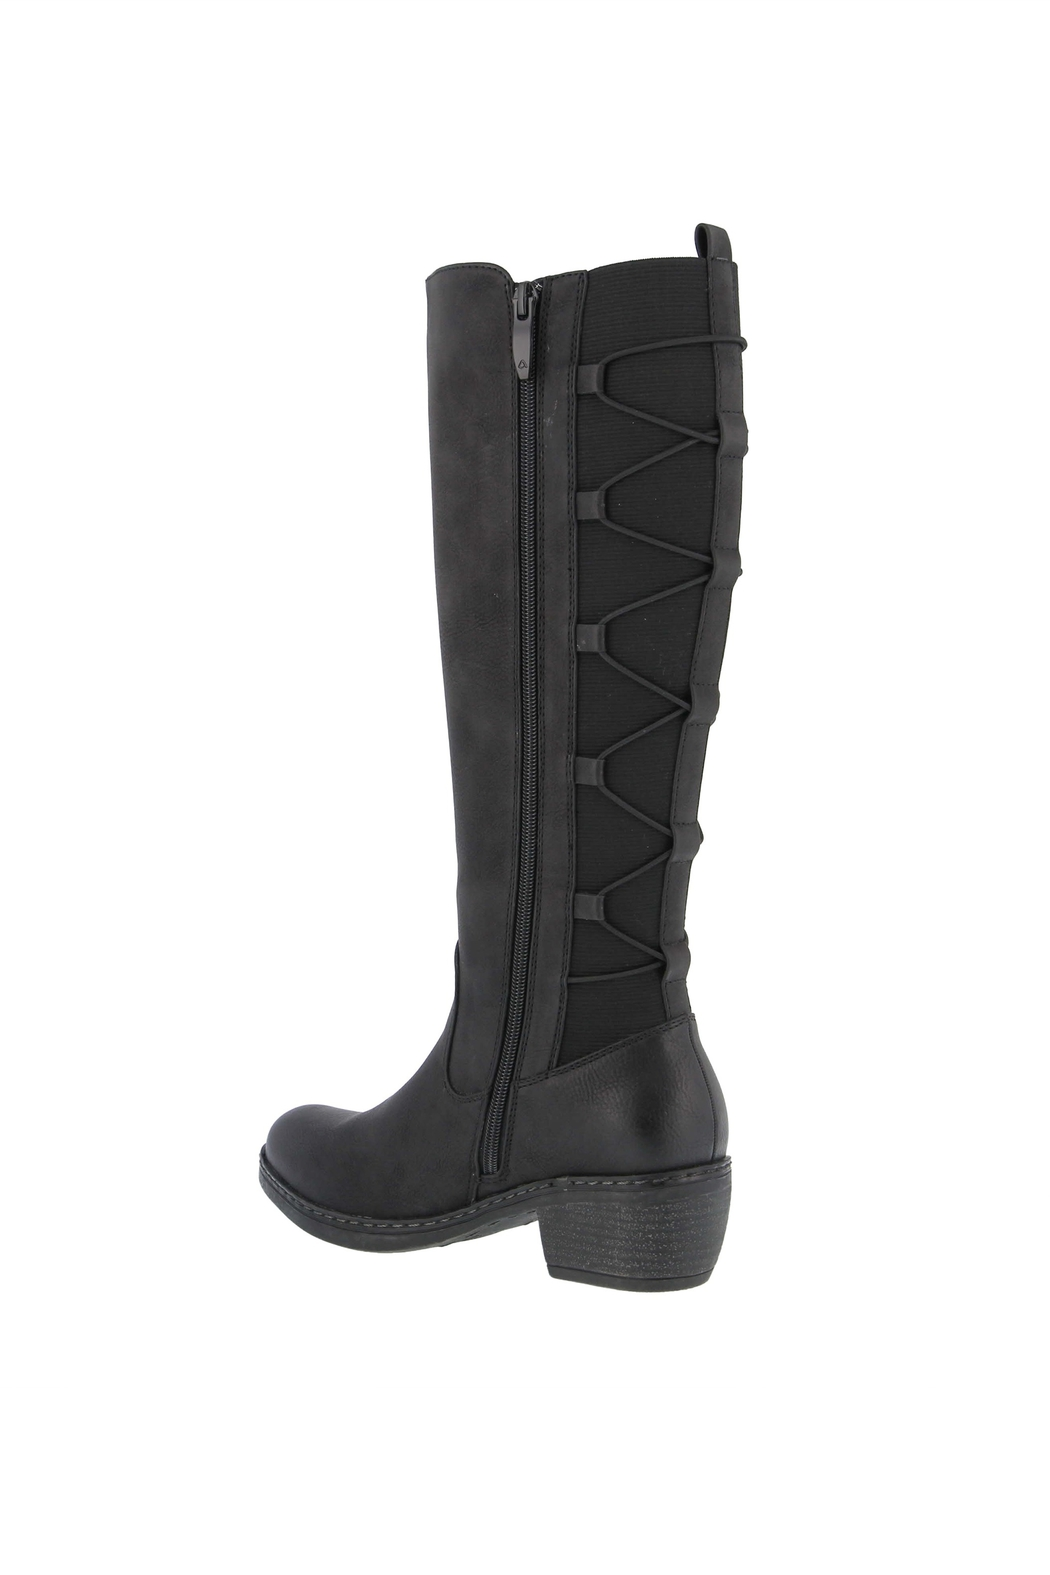 Spring Footwear Exspandable High Boots - Front Full Image